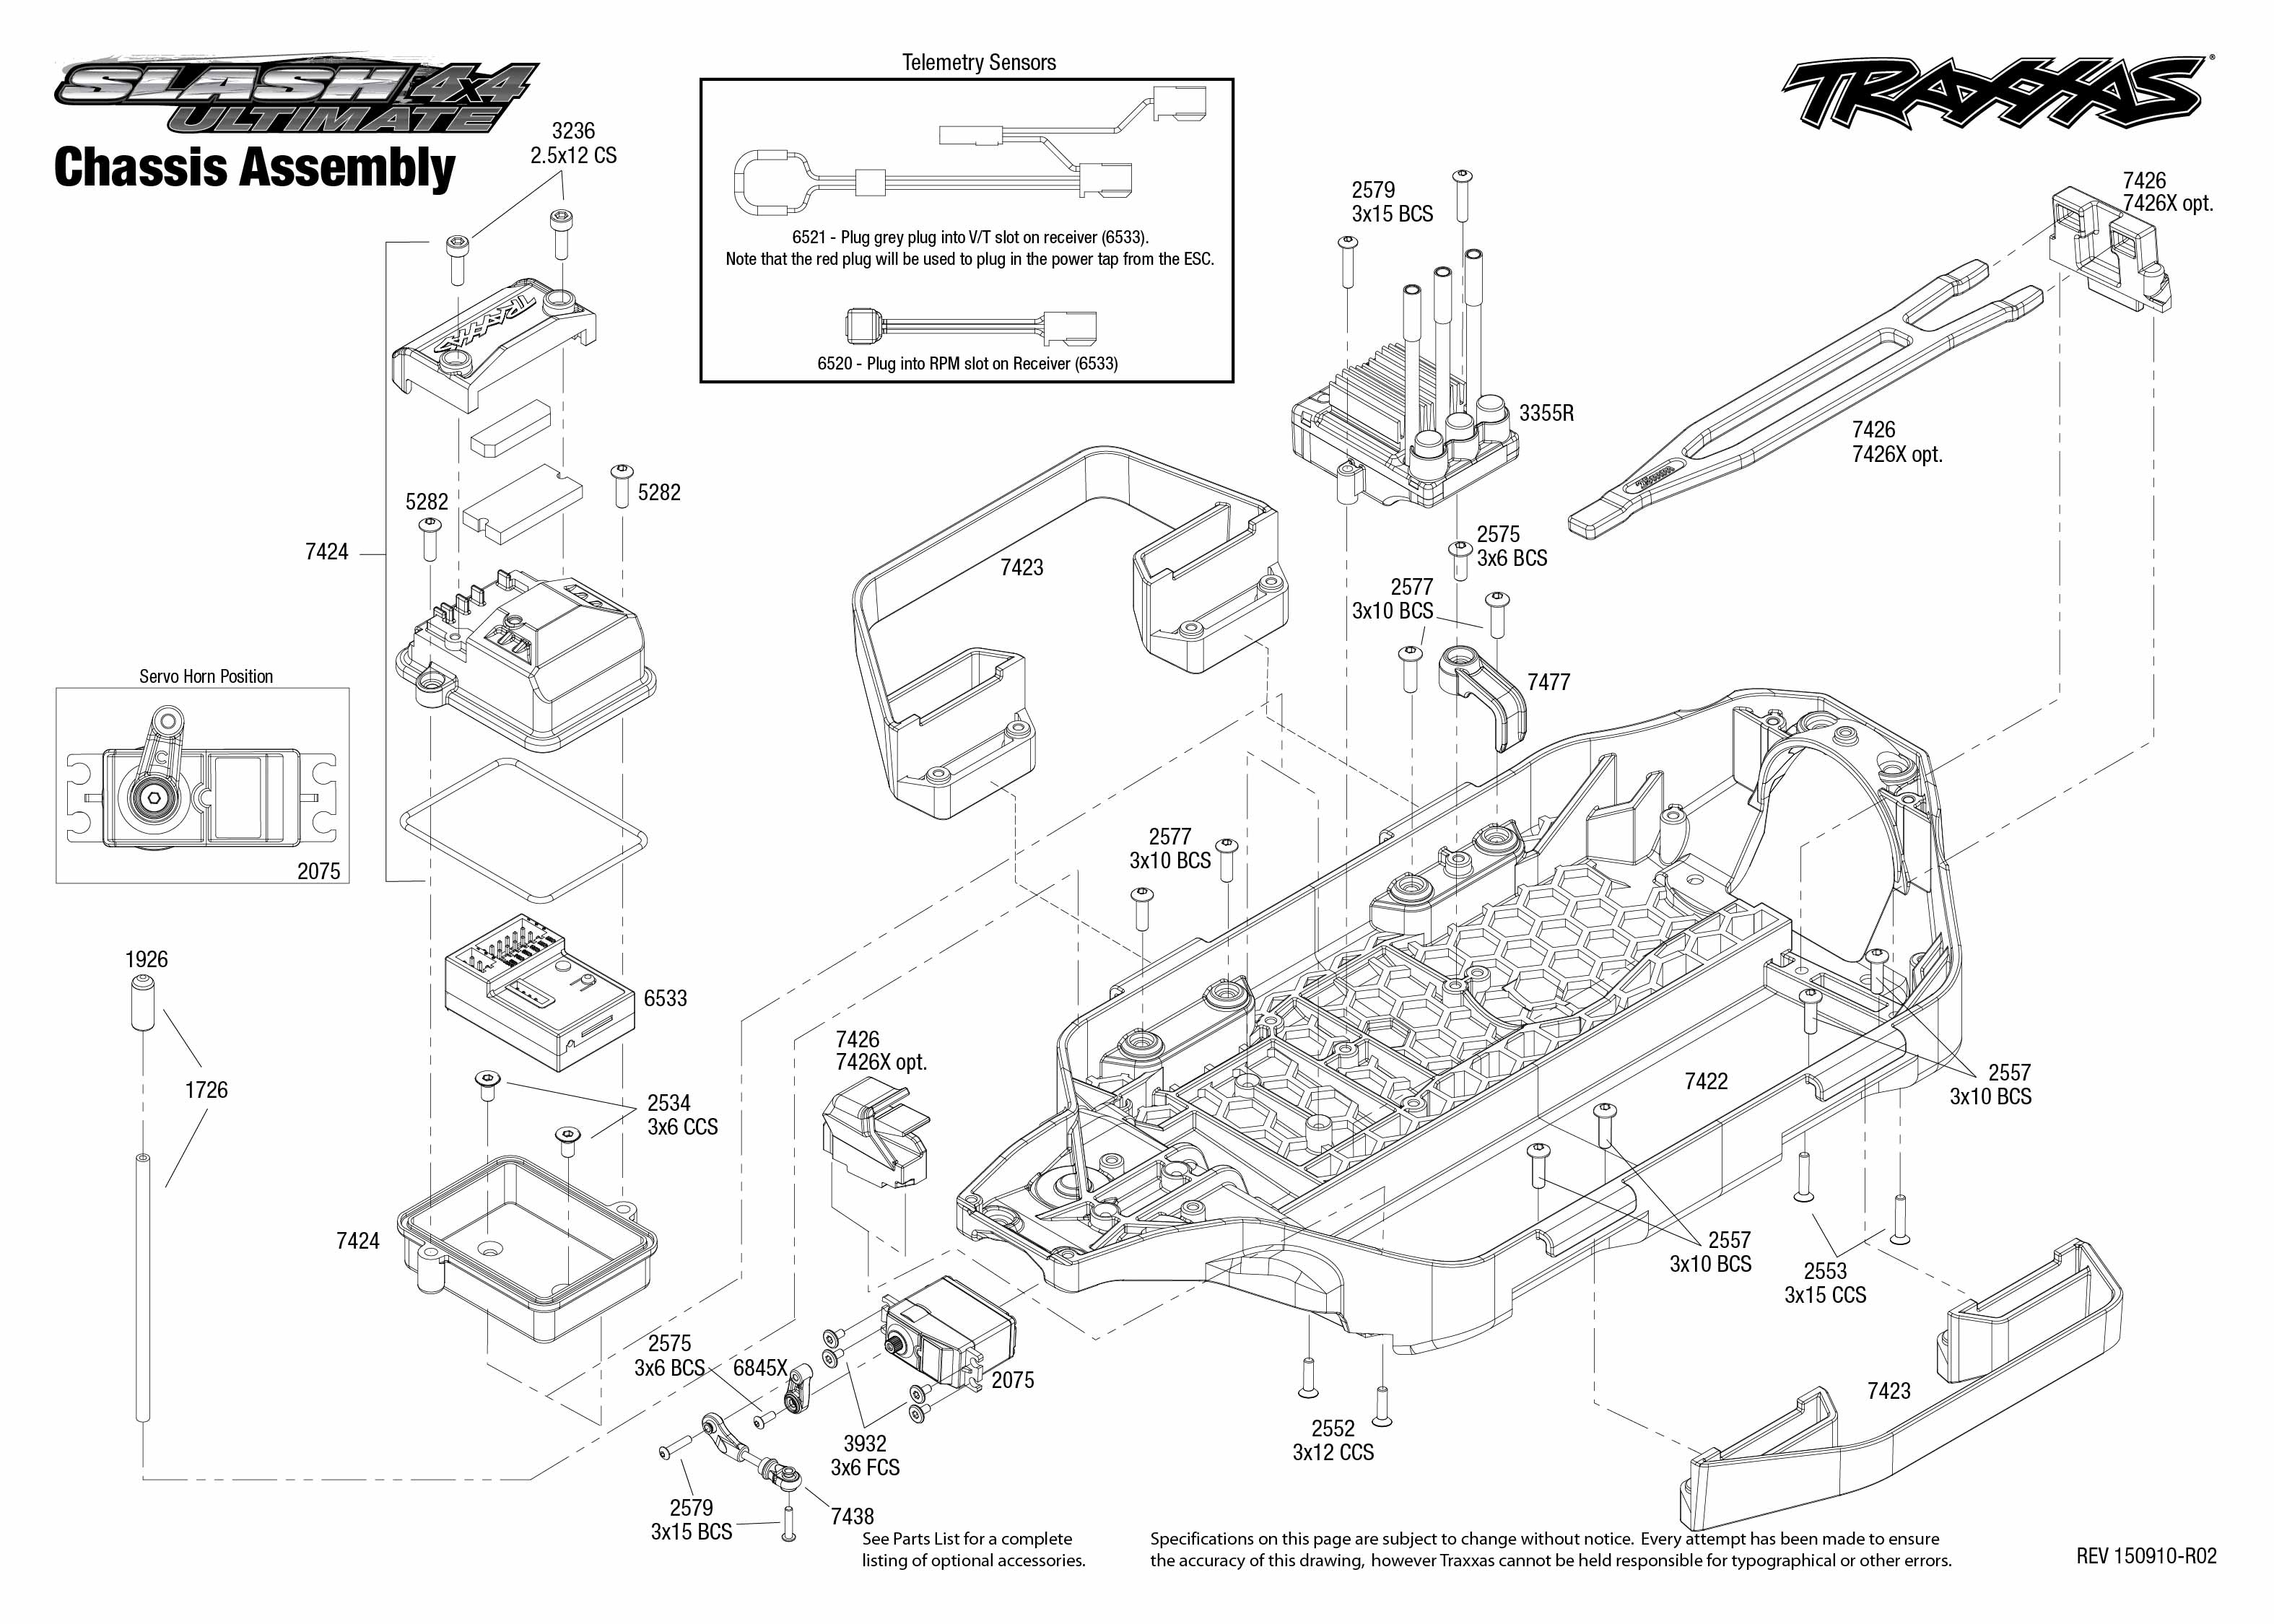 Slash 4x4 Ultimate Rtr 24 Tqi Tsm further Toyota Repair Service Manuals further Steering Axle Diagram furthermore Telluride 4x4 24g Titan 12t 2 moreover Load Charts For Cranes Aerial Lifts And Telehandlers. on ford ranger crawler